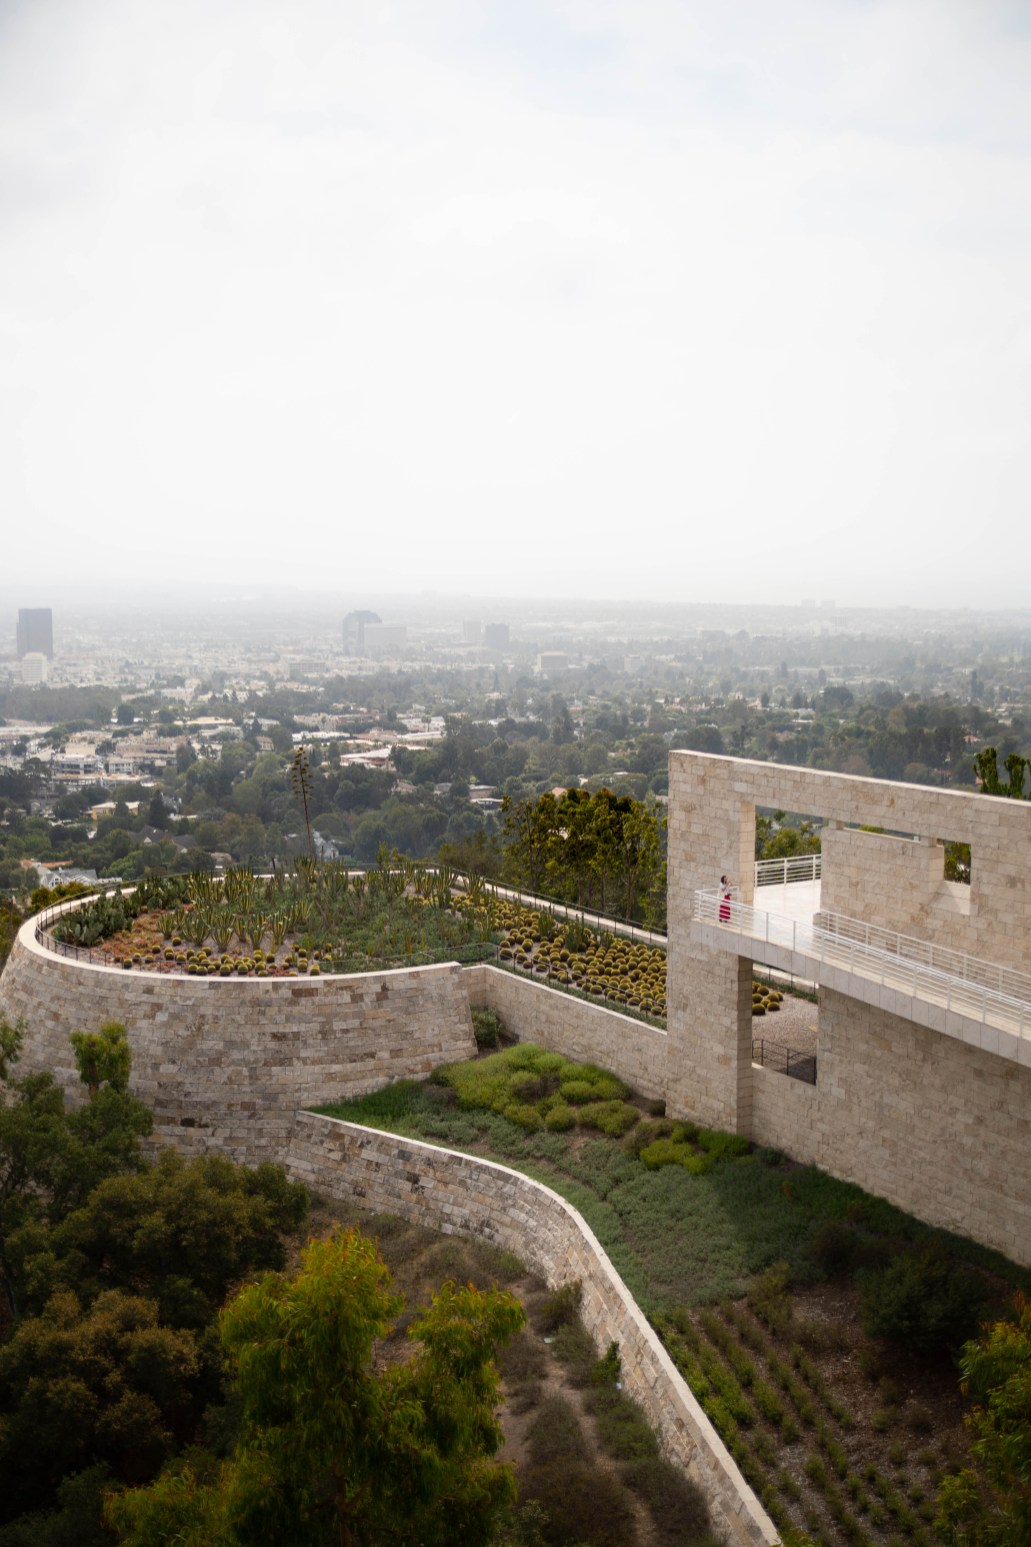 The Getty Museum in Los Angeles, California Home to Rembrandt, van Gogh, Monet, Picasso, and Many Other Famous Works of Art